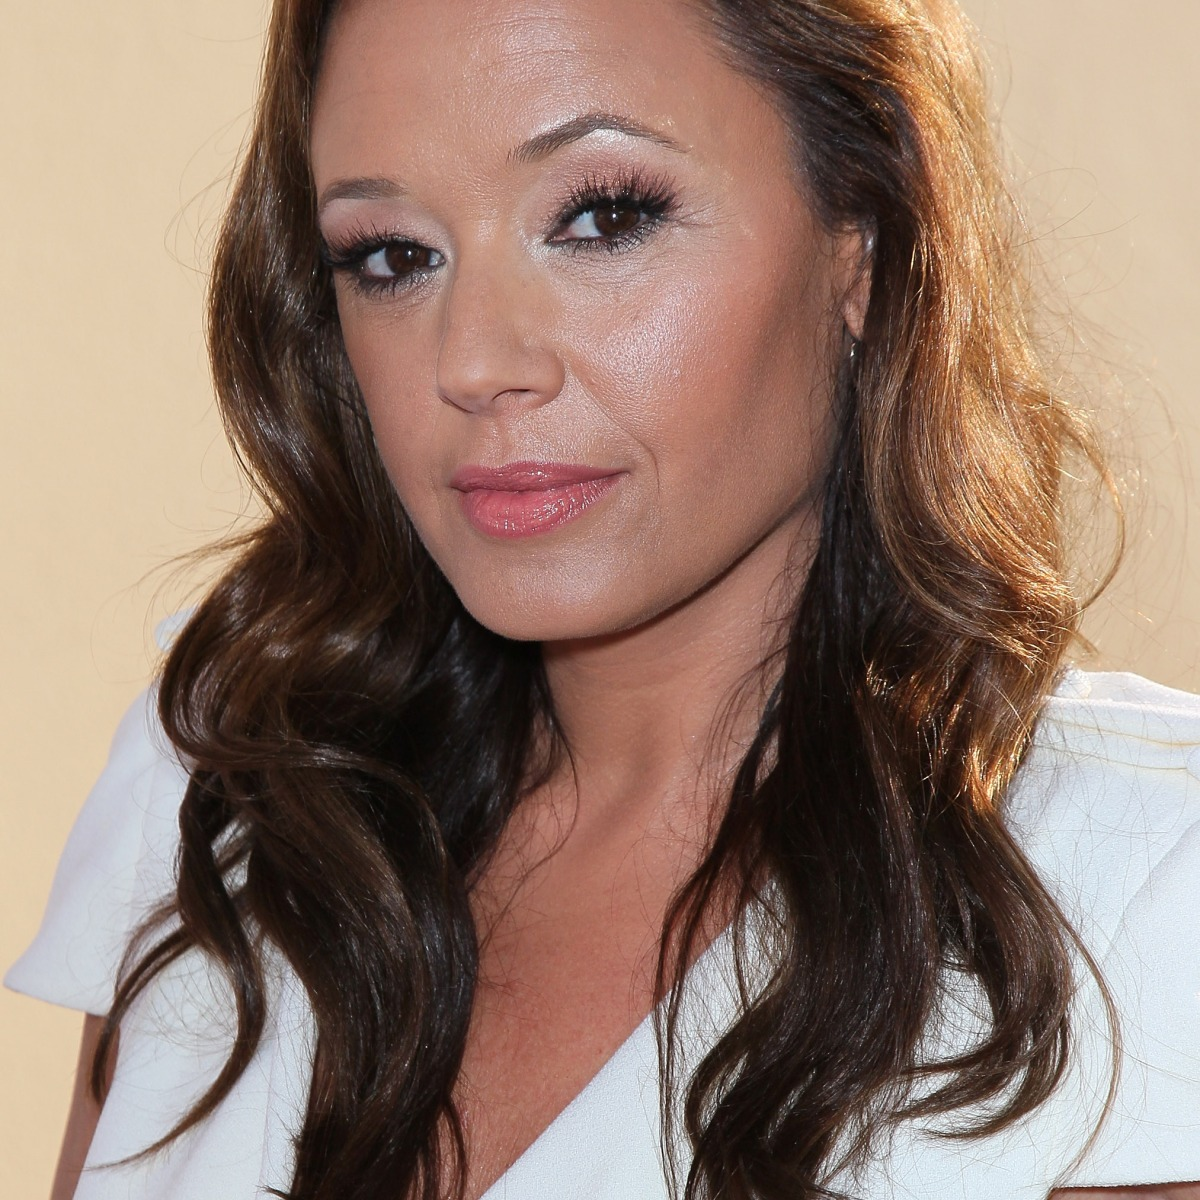 Leah Remini Leah Remini T King Of Queens Sexy And-1354